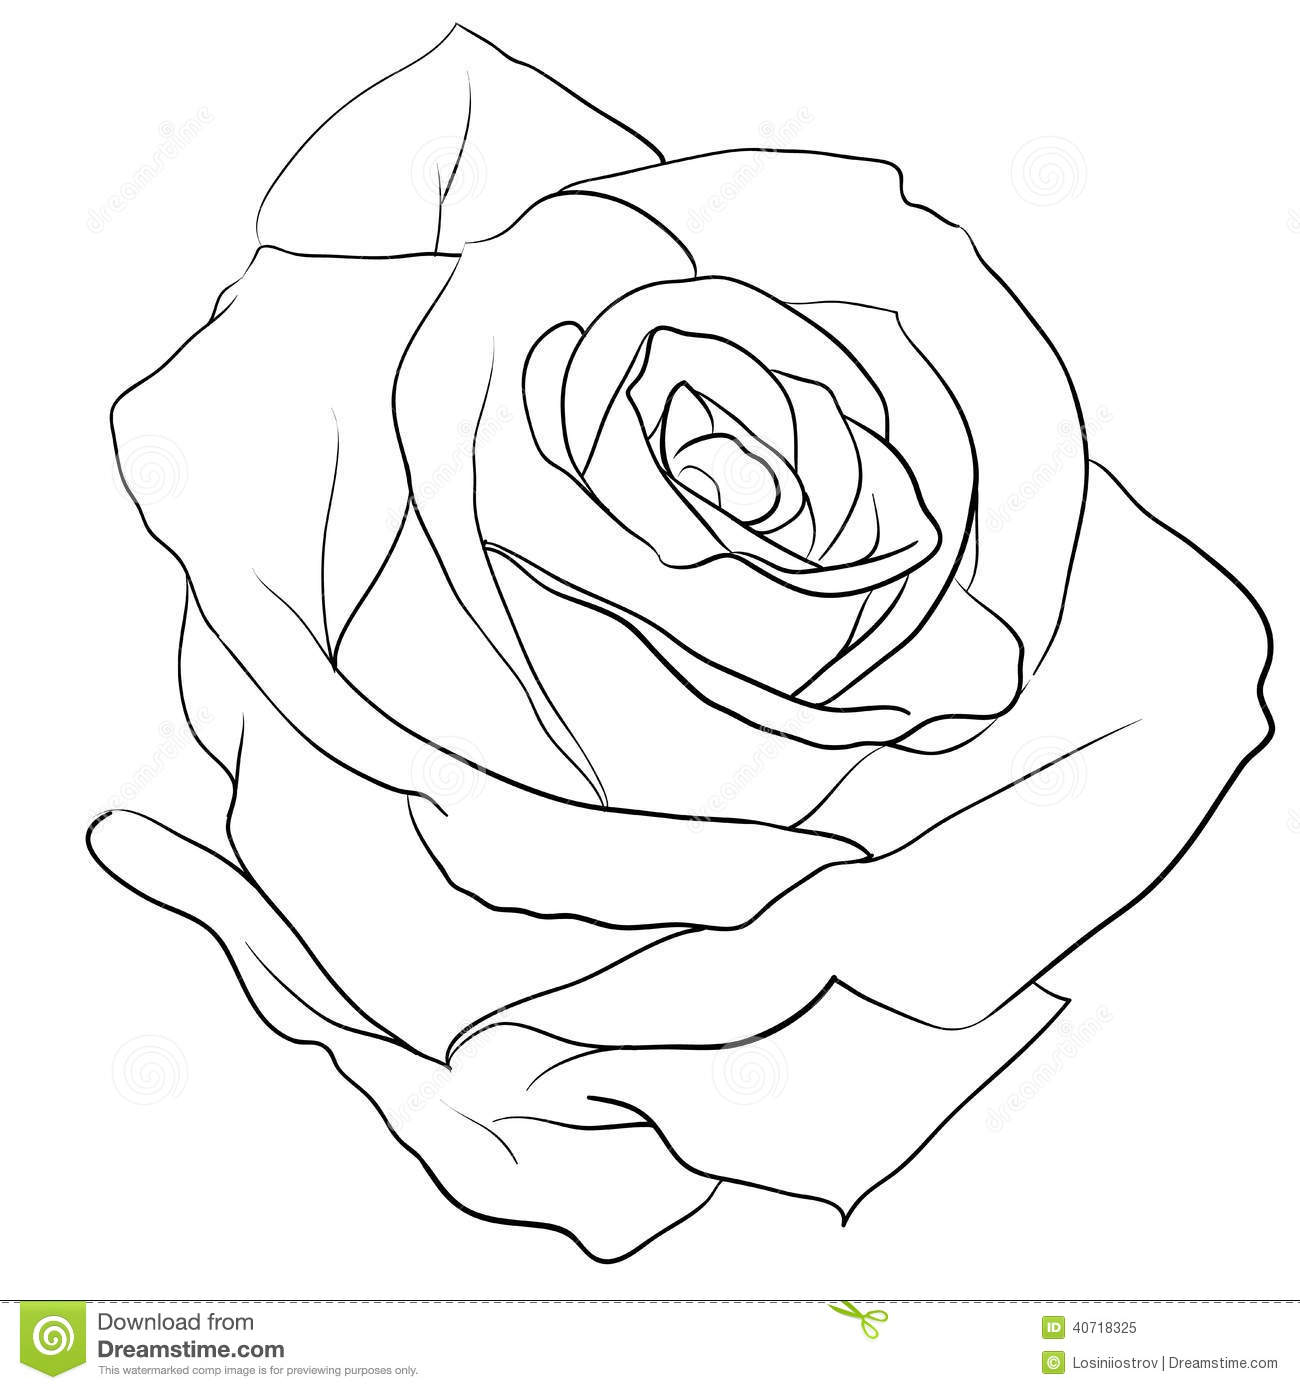 1300x1390 Tattoo Design Drawings Heart Designs To Rose Drawing Outline